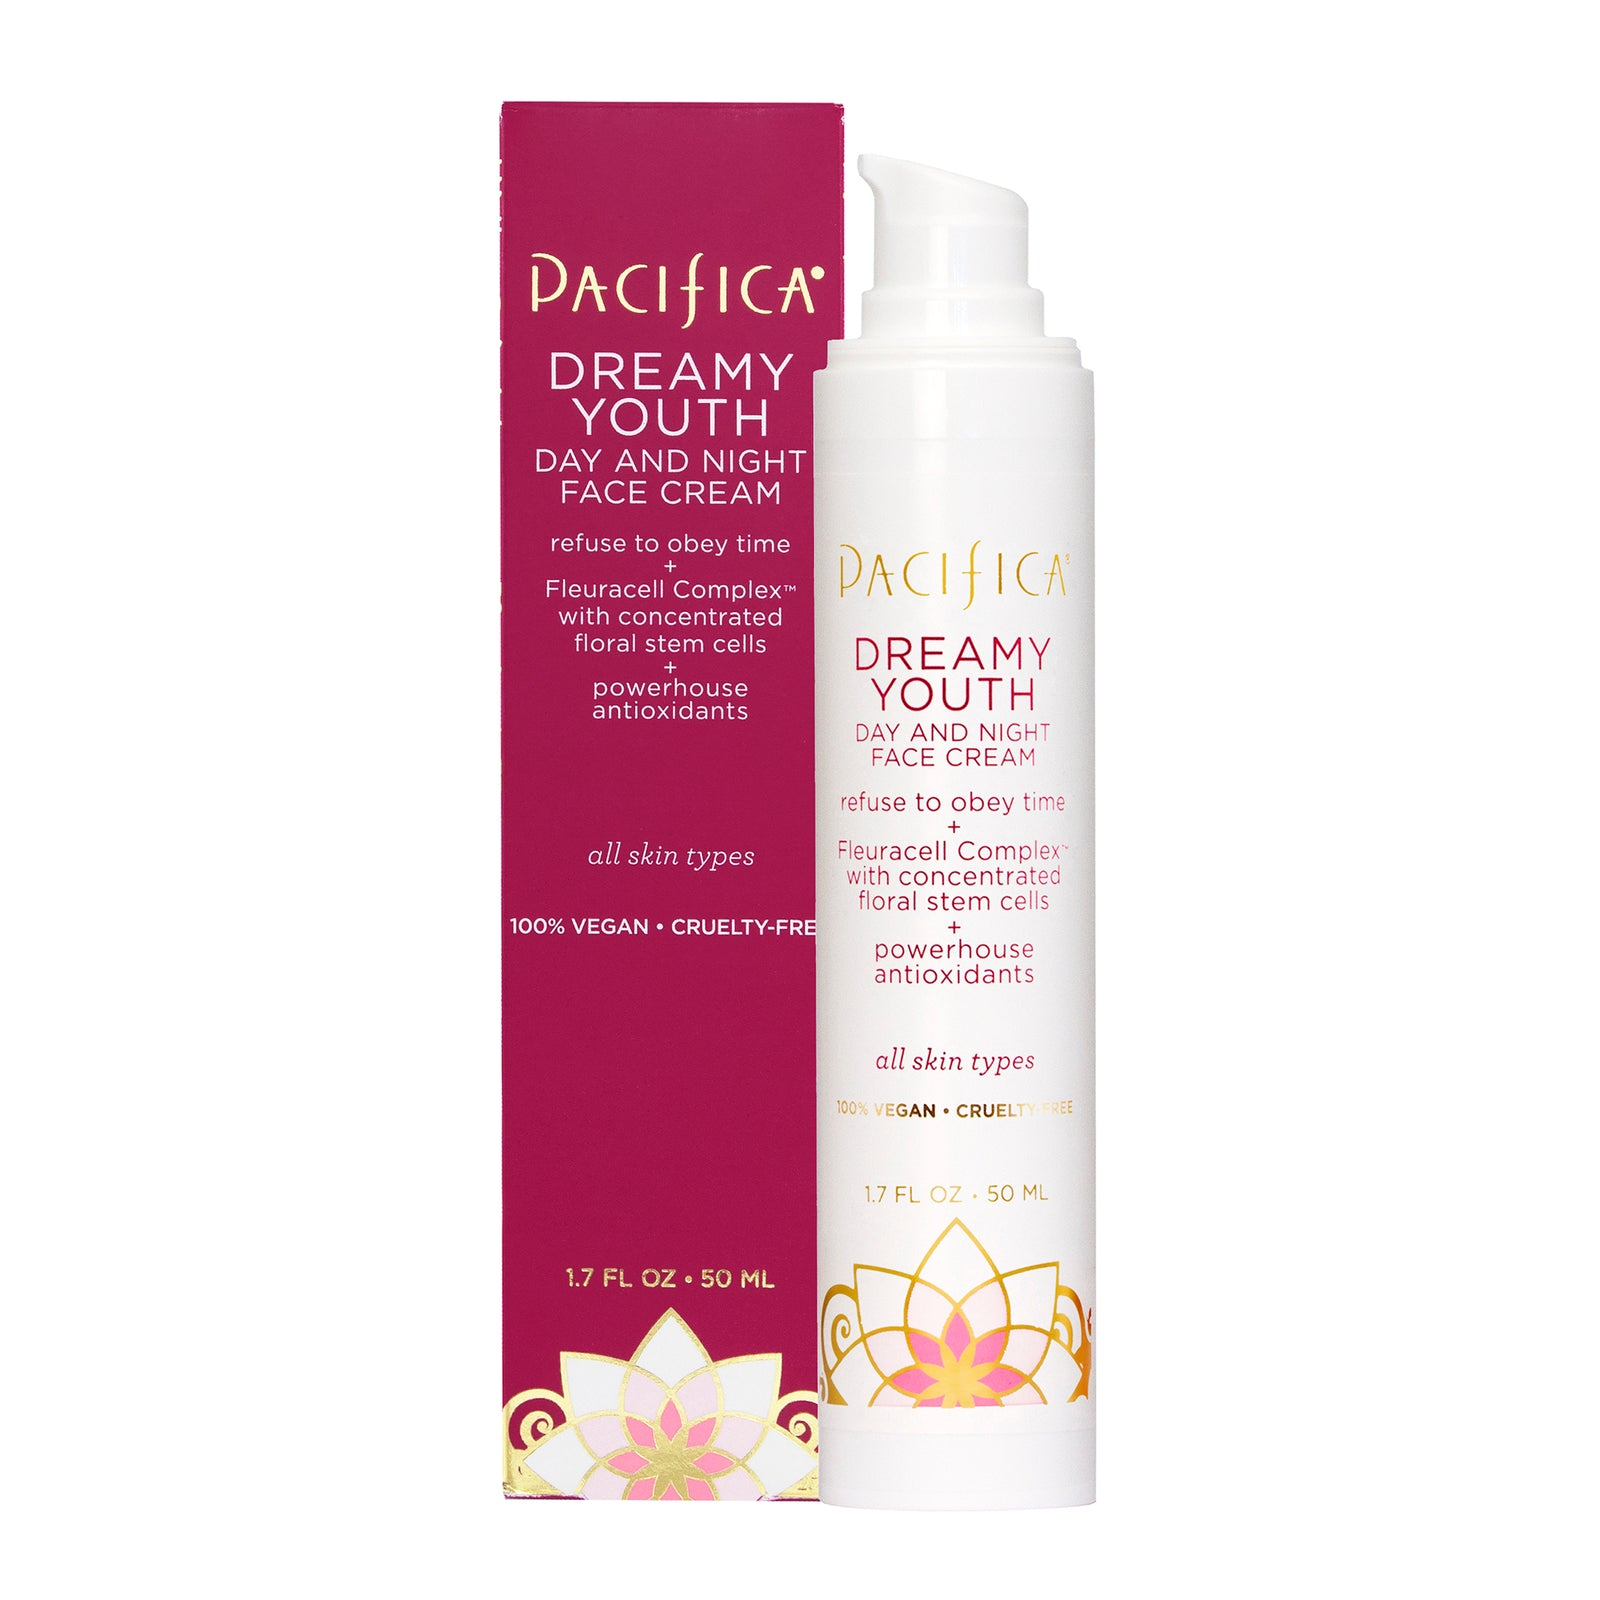 pacificabeauty.com - Dreamy Youth Day & Night Face Cream